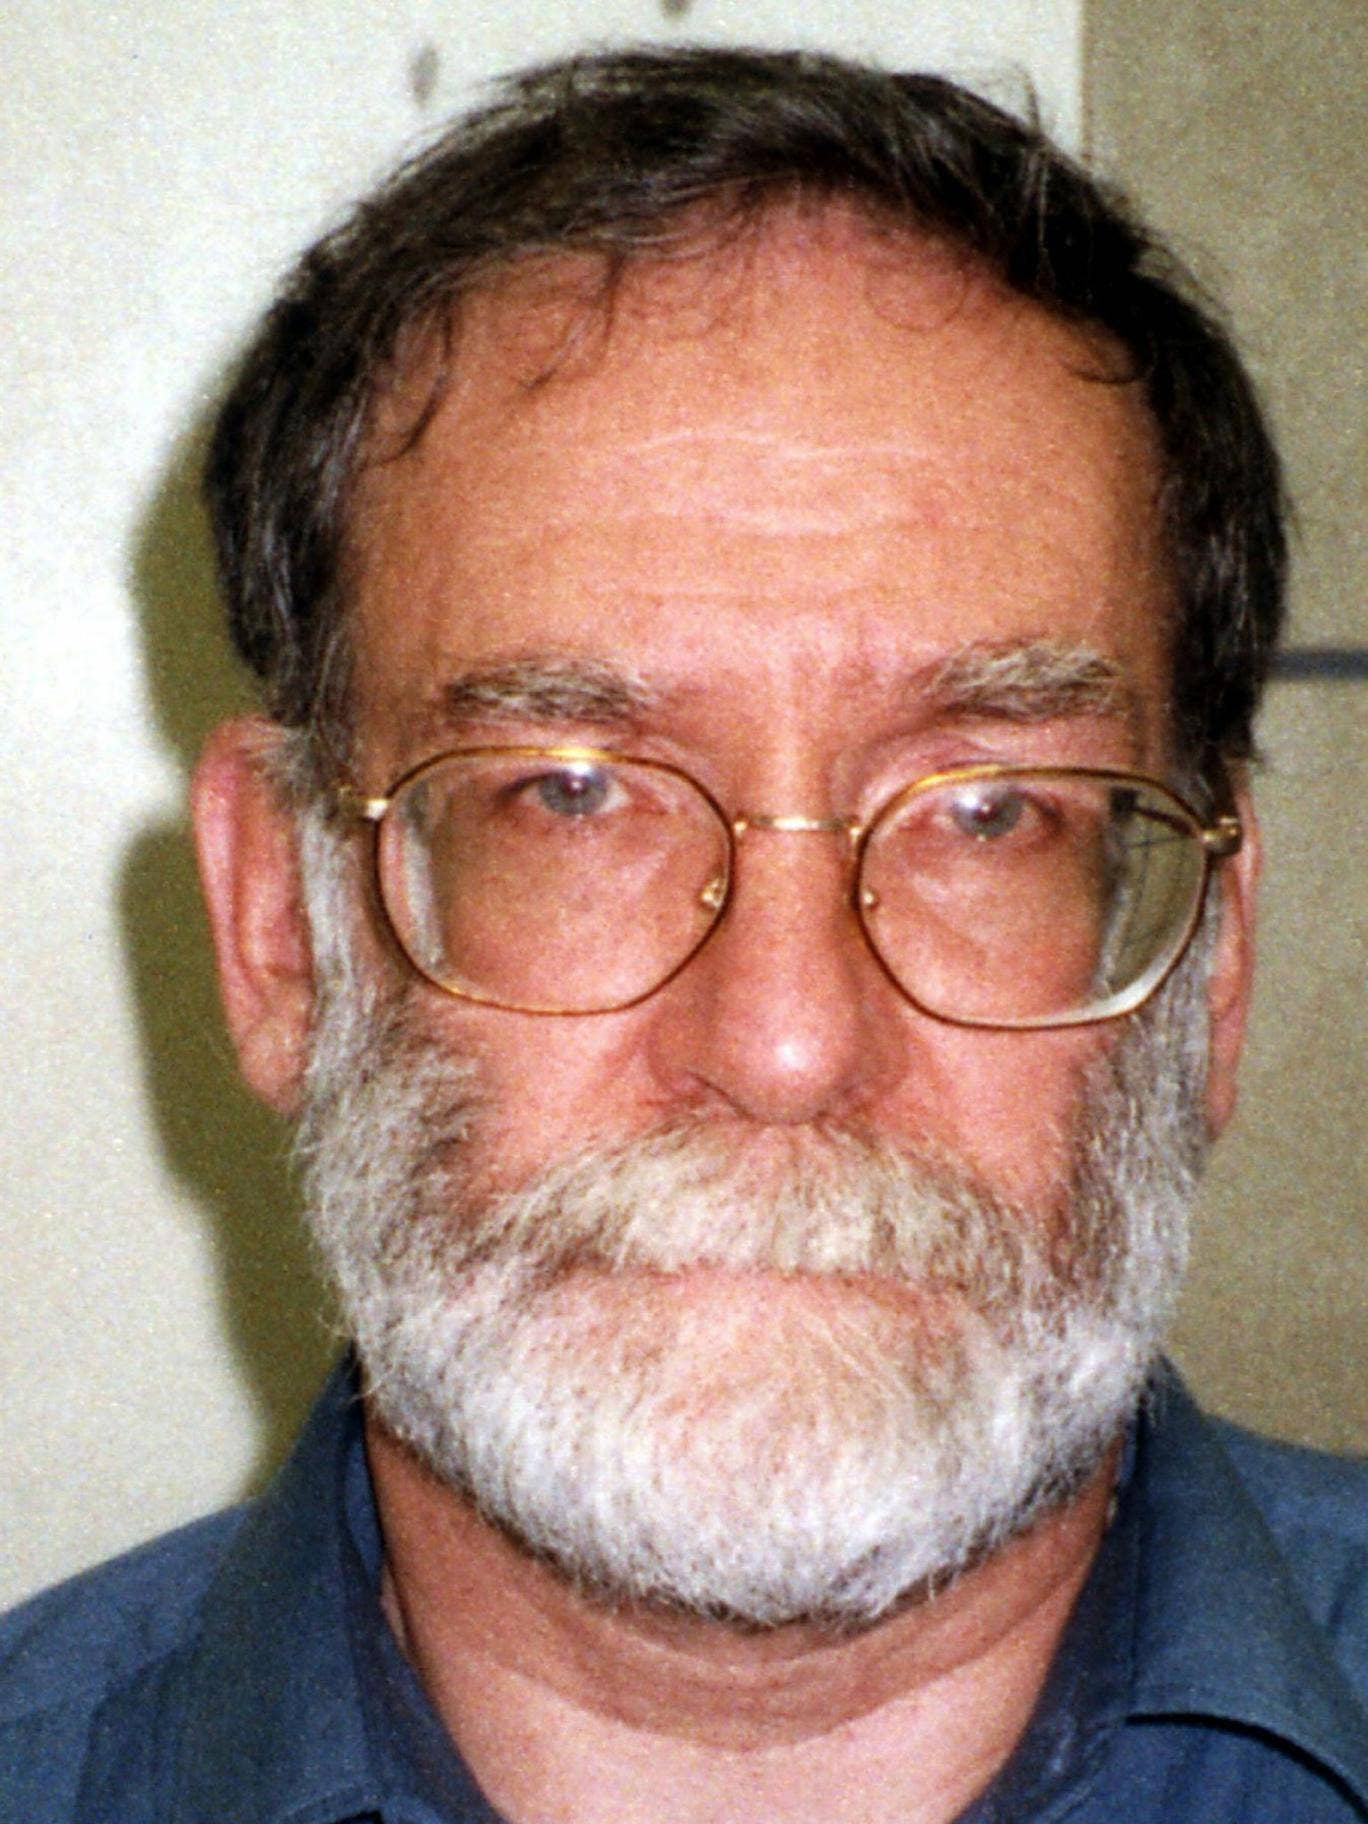 Harold Shipman, a GP who is though to have killed 260 patients, died in Wakefield Prison in January 2004